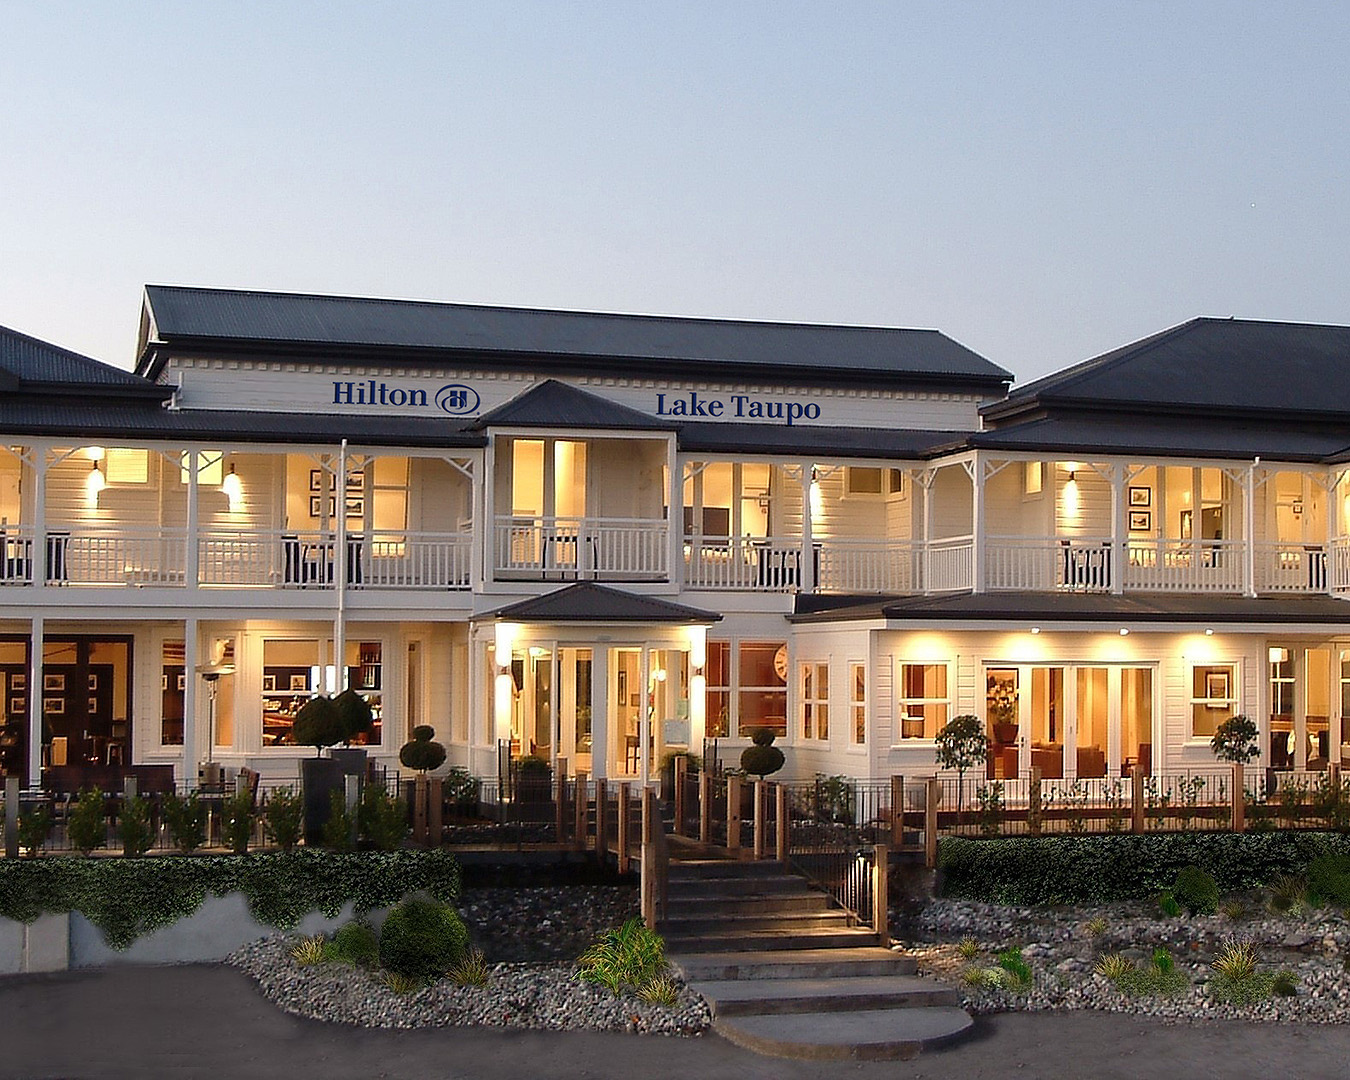 The exterior of Hilton Lake Taupo lit up by lights at dusk.